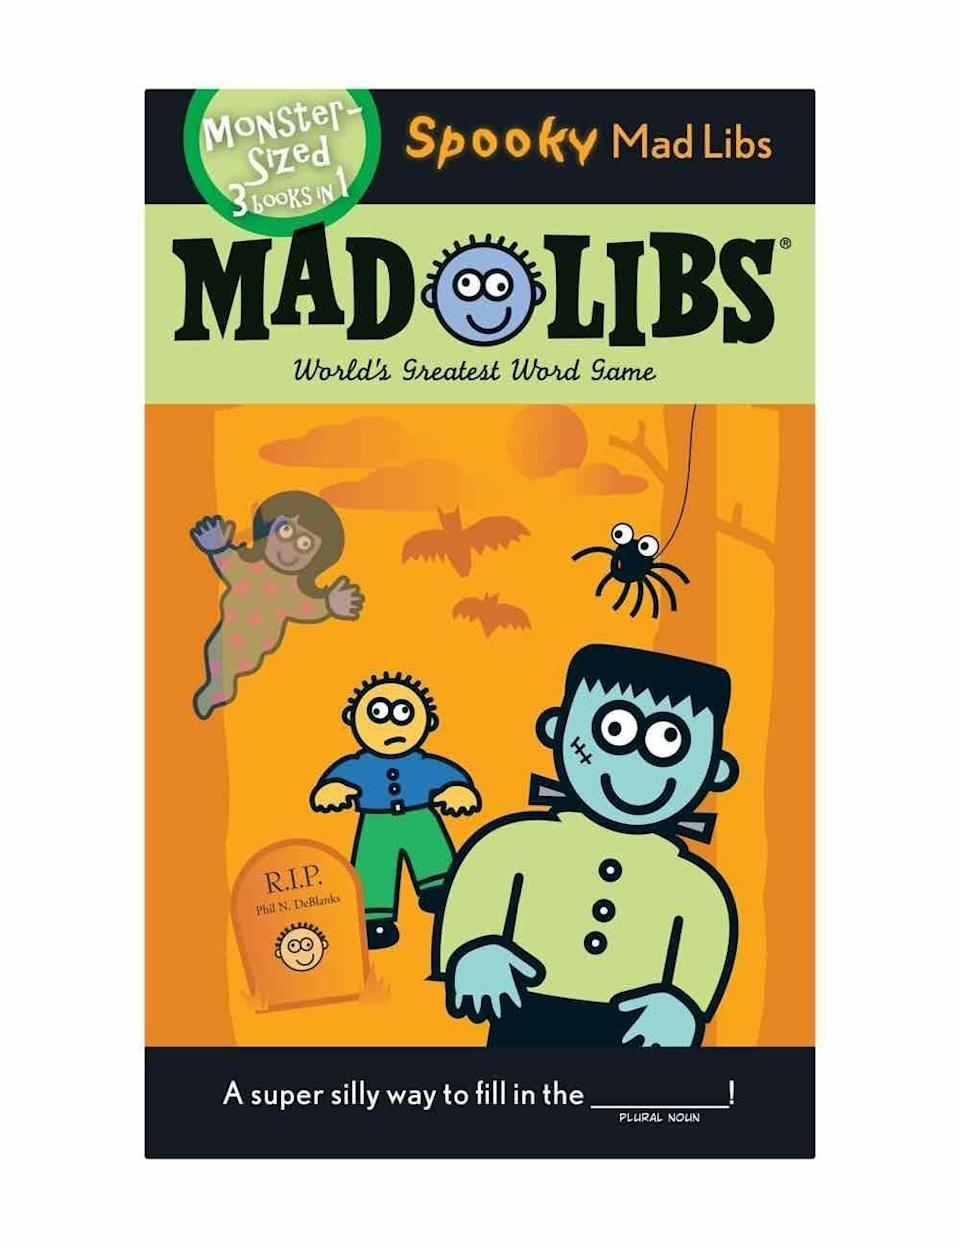 """<p><strong>Mad Libs</strong></p><p>amazon.com</p><p><strong>$5.99</strong></p><p><a href=""""https://www.amazon.com/dp/0843120363?tag=syn-yahoo-20&ascsubtag=%5Bartid%7C10072.g.33543751%5Bsrc%7Cyahoo-us"""" rel=""""nofollow noopener"""" target=""""_blank"""" data-ylk=""""slk:Shop Now"""" class=""""link rapid-noclick-resp"""">Shop Now</a></p><p>Here's another game that can easily be played during a socially-distanced get-together. Just put one person in charge of reading the prompts and recording the answers. The silly, spooky result is sure to elicit a roaring round of laughter. </p>"""